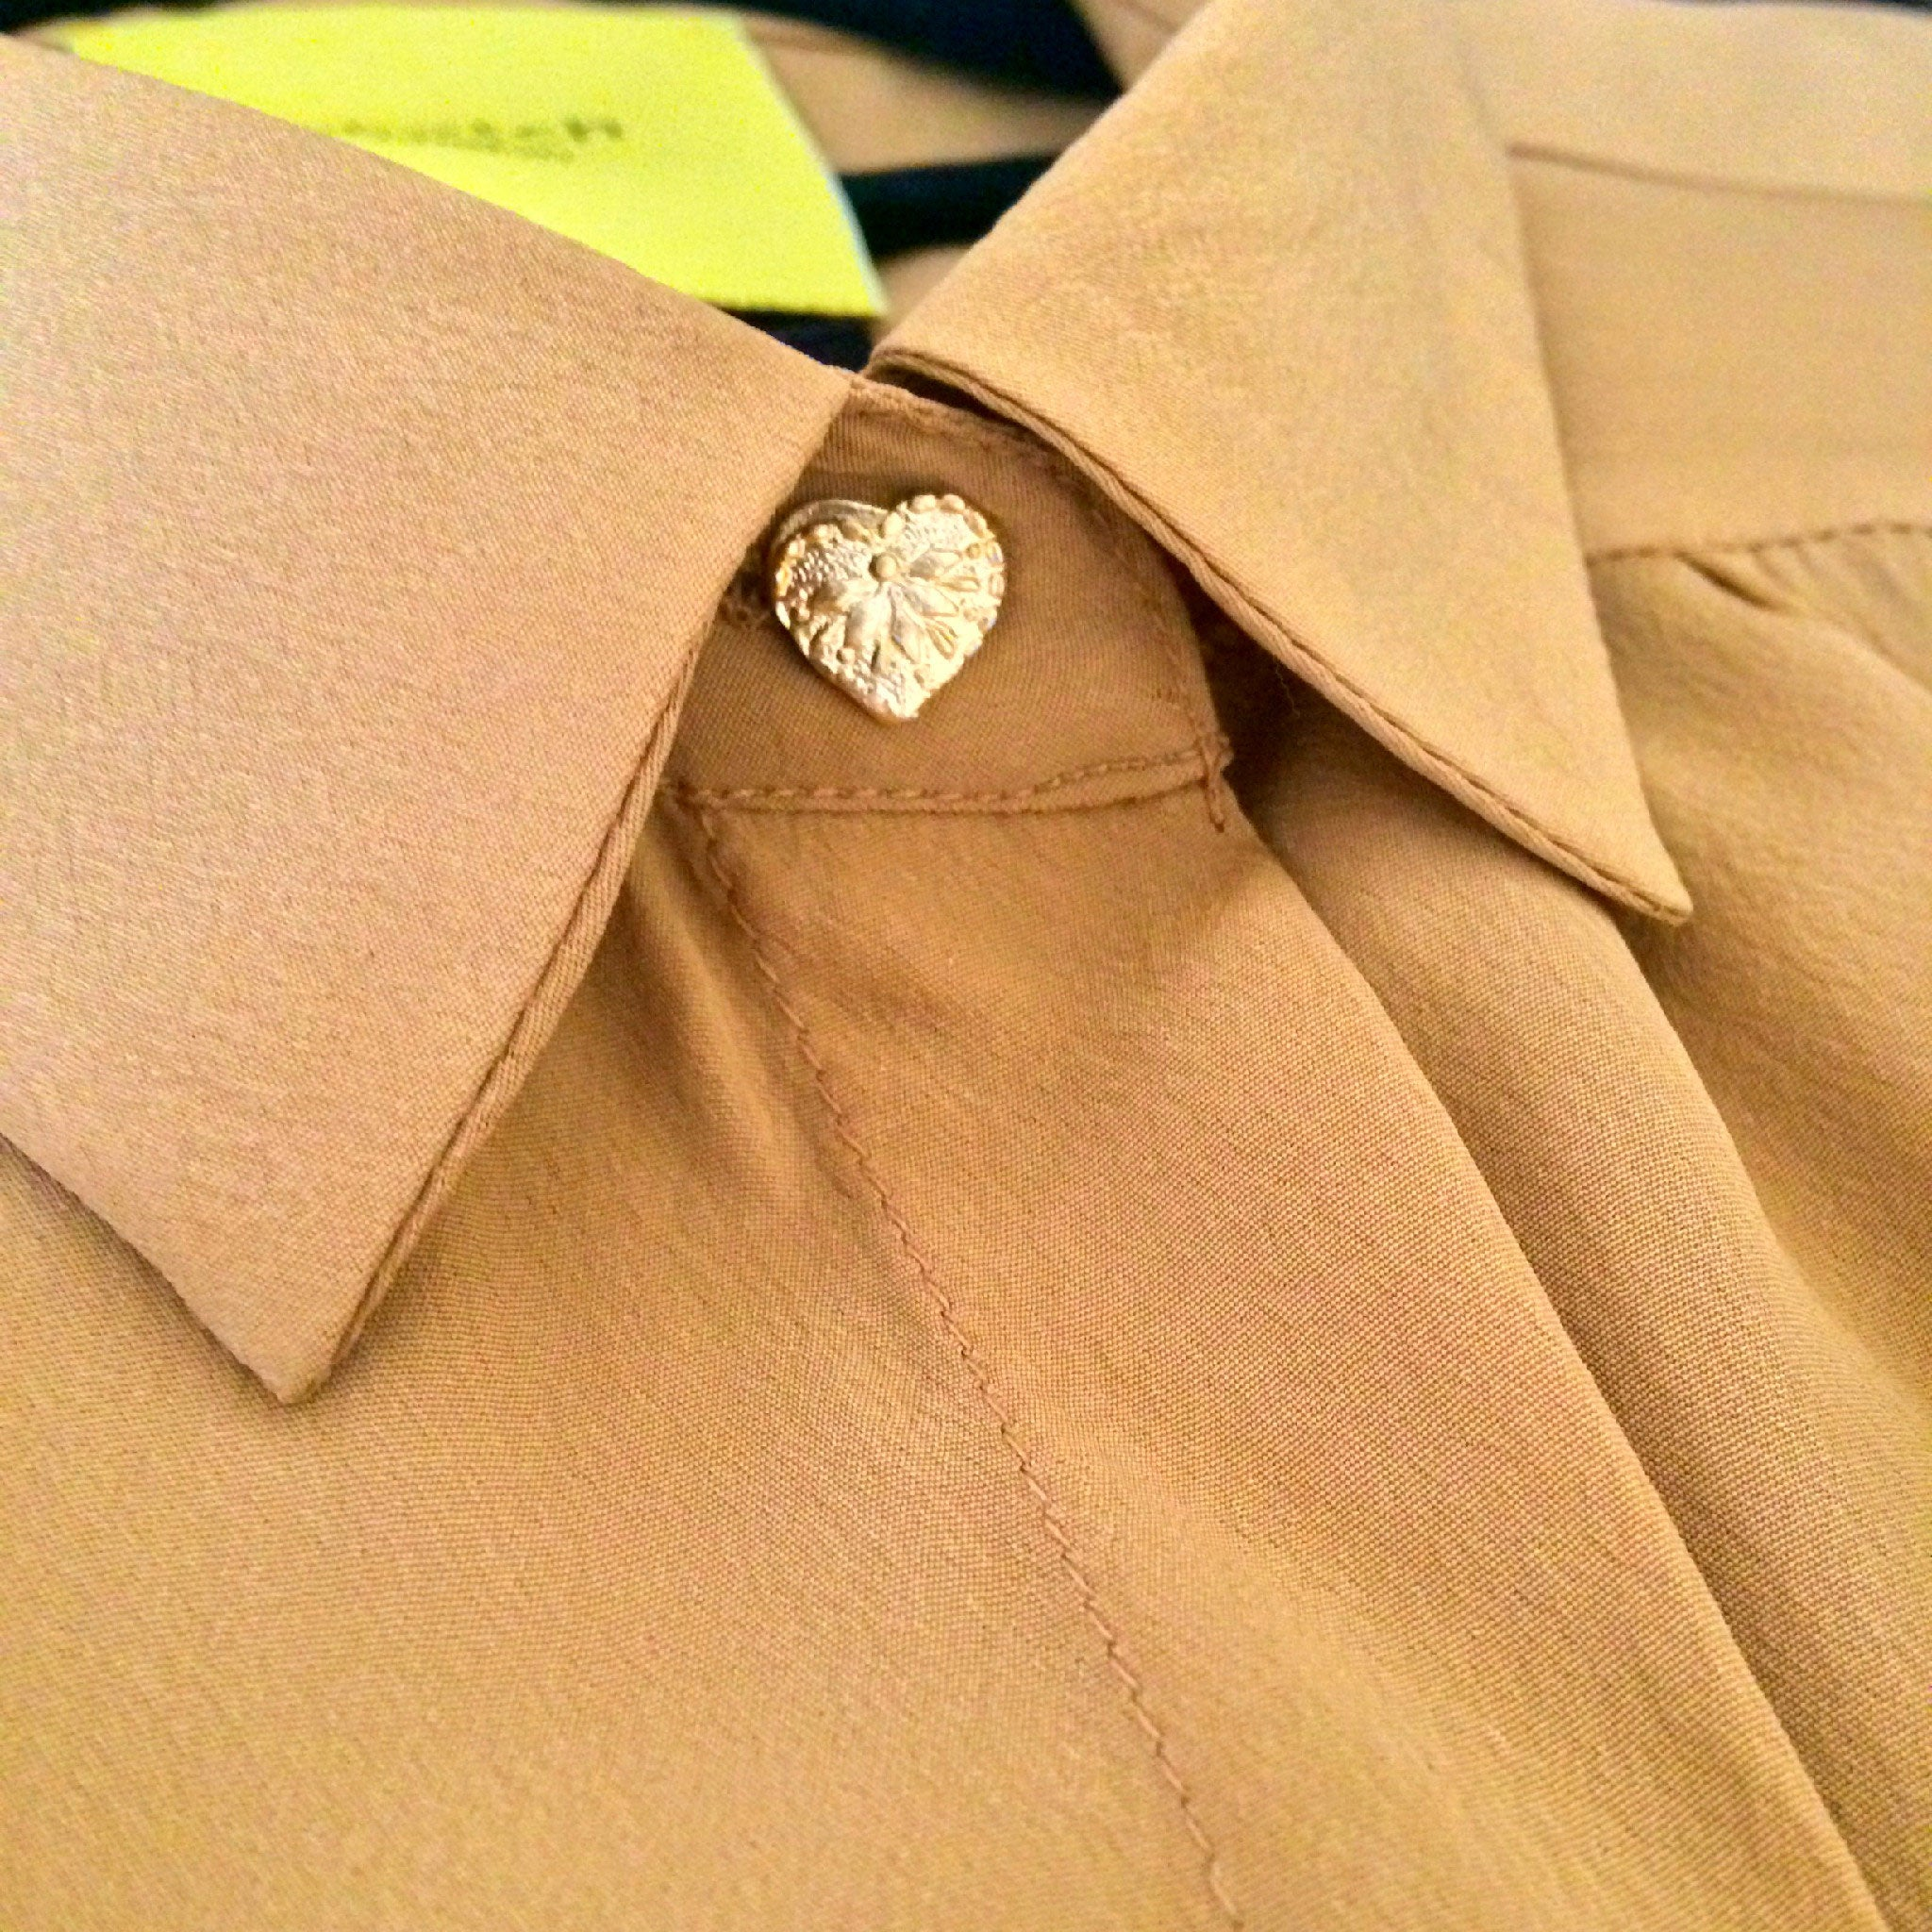 Sketch London Heart Button Gold Caramel Shirt Blouse full sleeve ethical sustainable